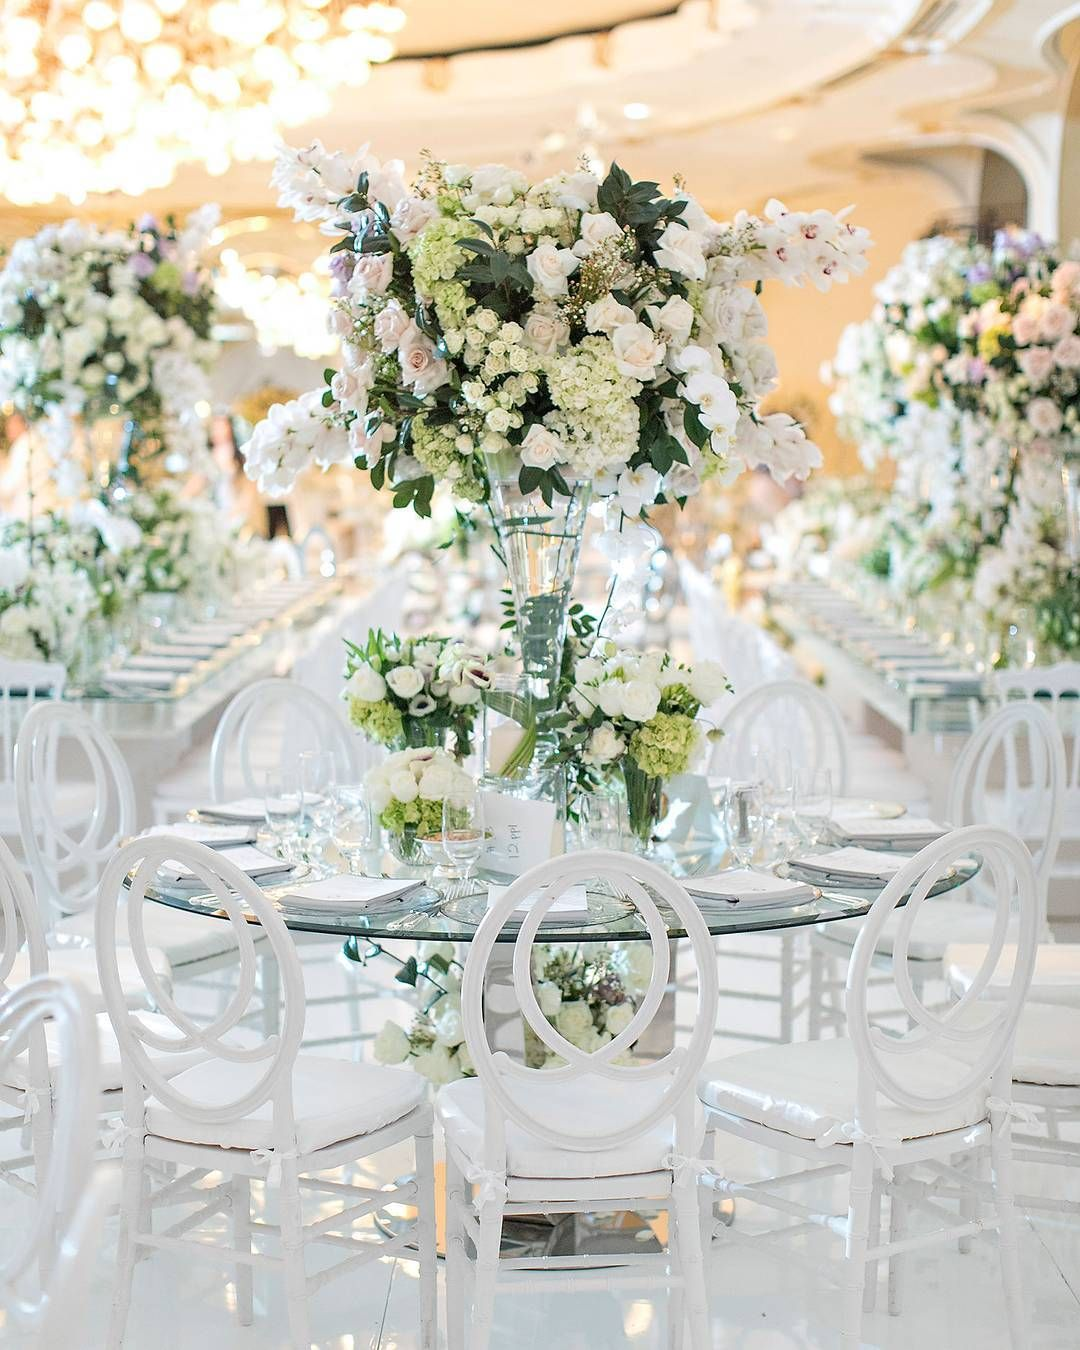 Ideas For Wedding Reception Without Dancing: Revelry Event Designers In 2019